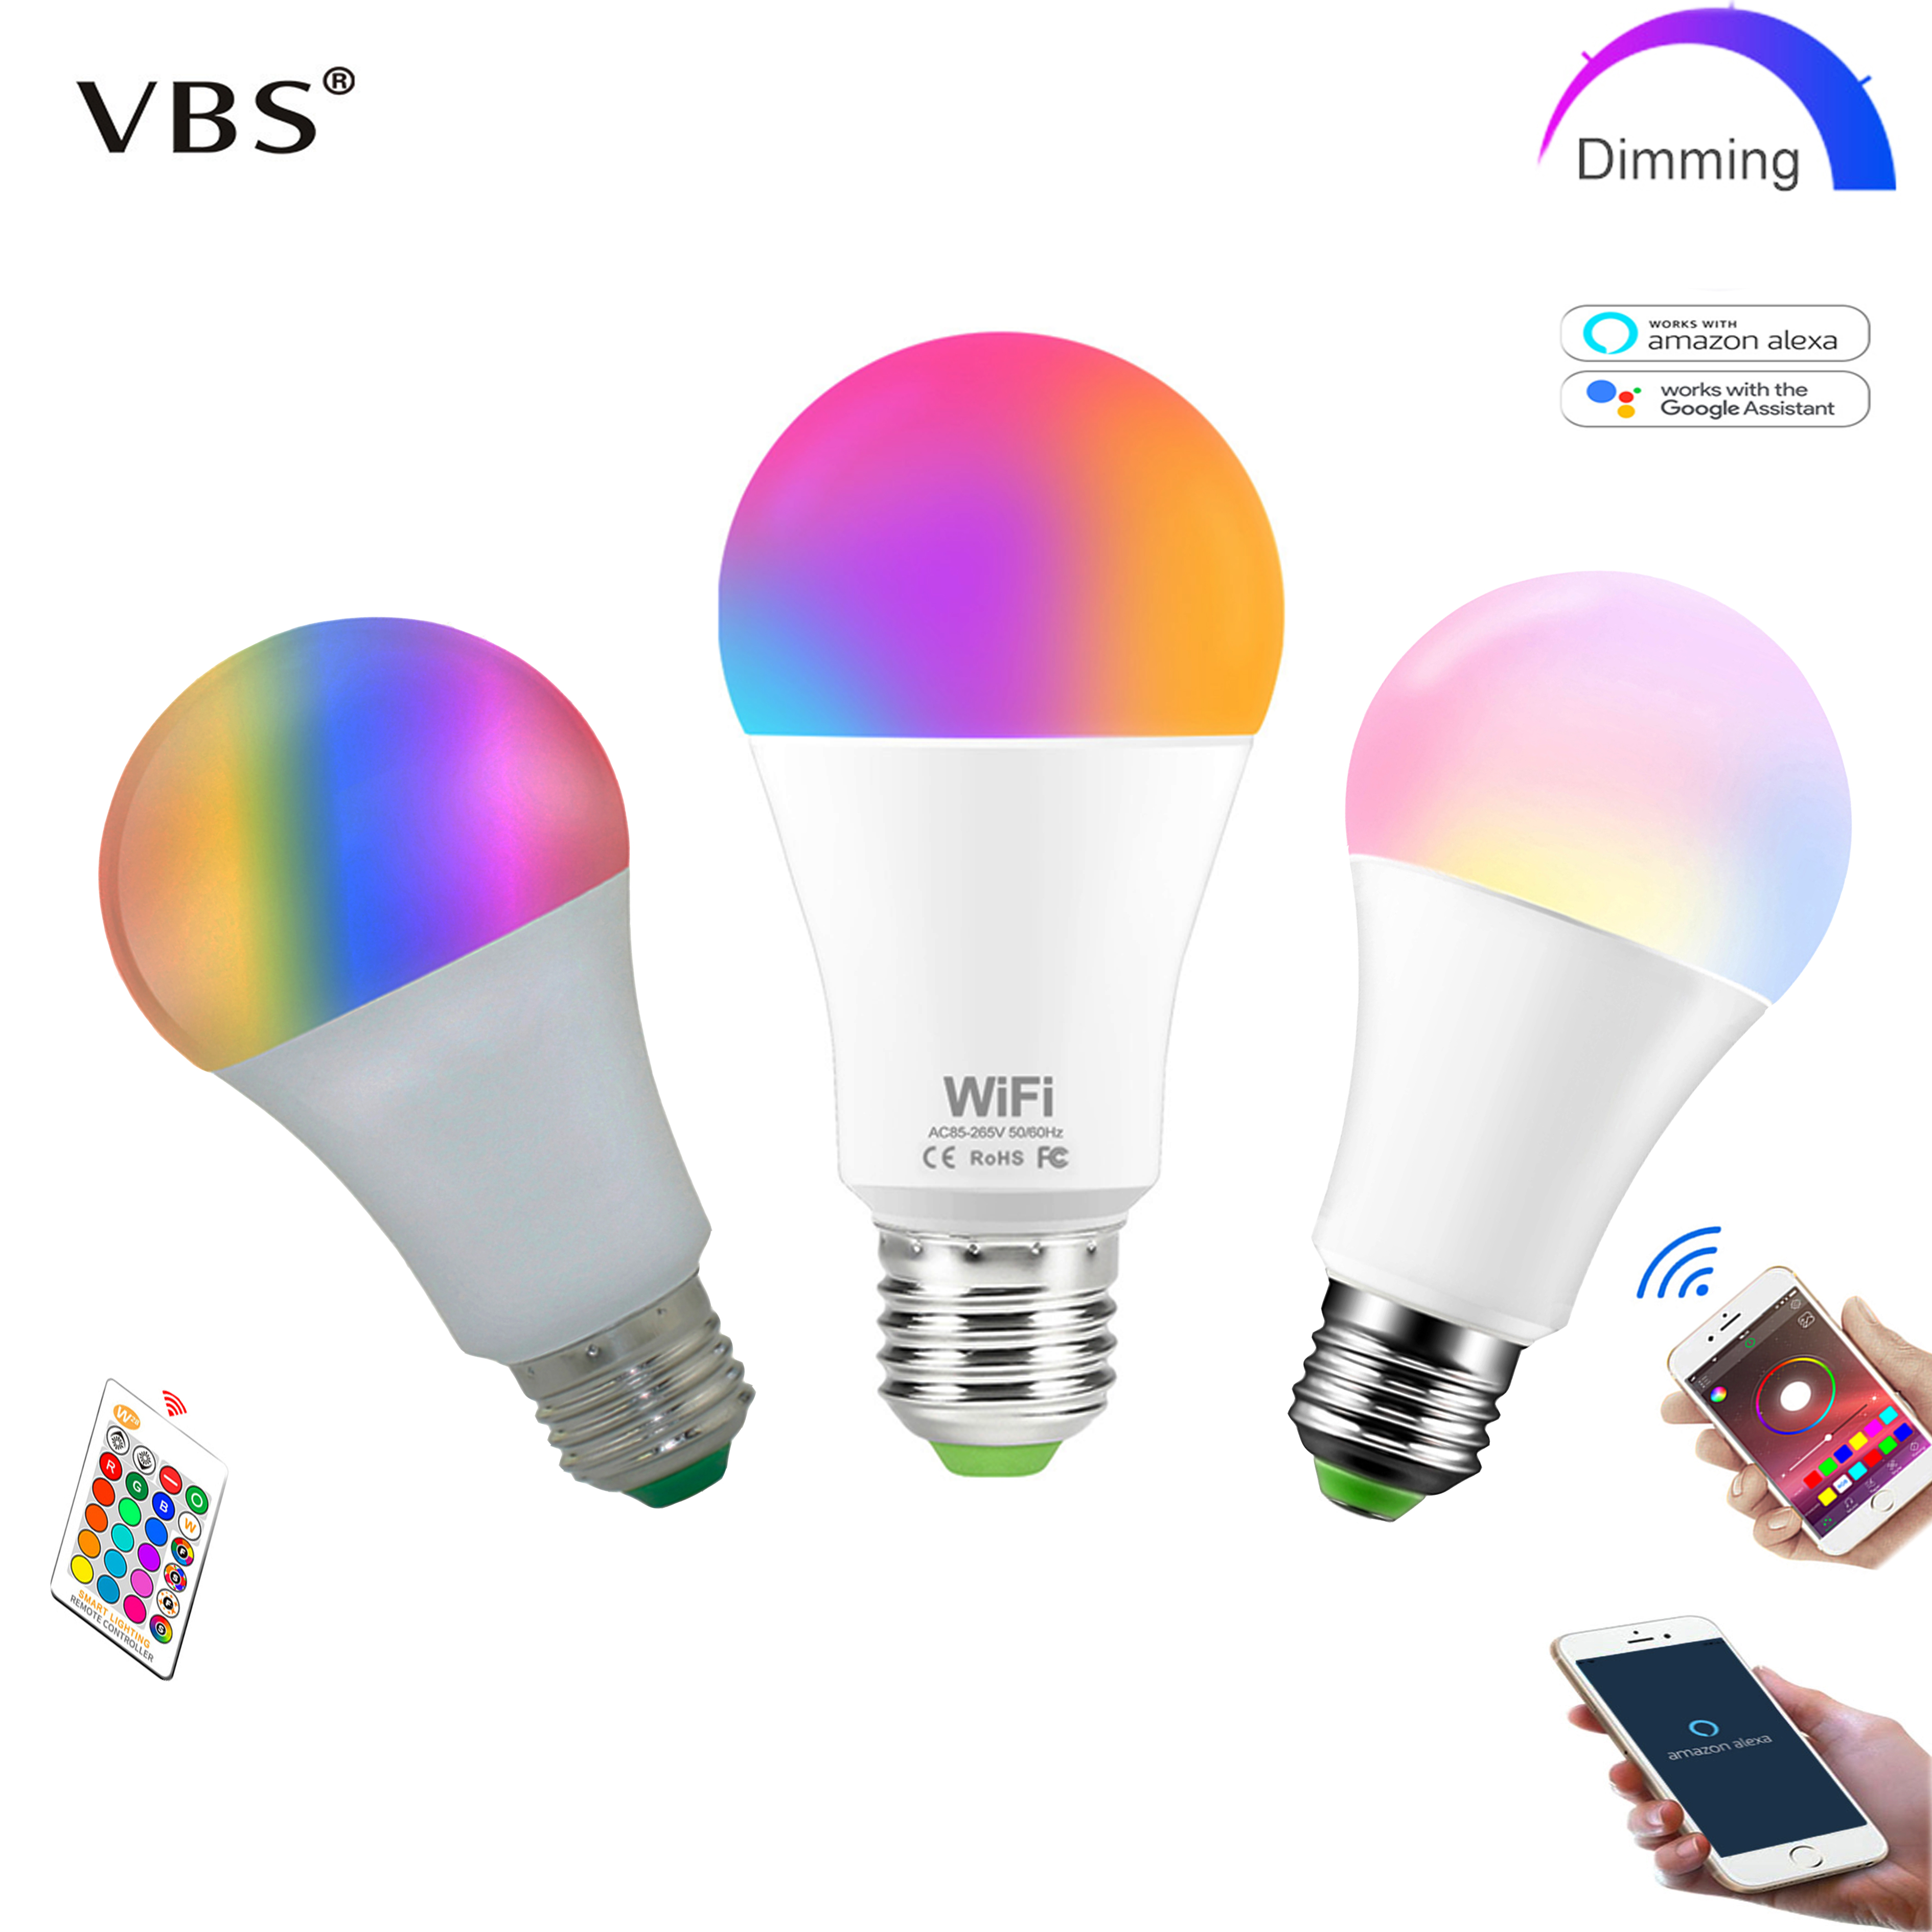 Dimmable E27 LED Lamp RGB 15W WIFI Smart Bulb Bluetooth  APP Control 5W 10W IR Remote Control RGBWW Light Bulb 85-265V For Home